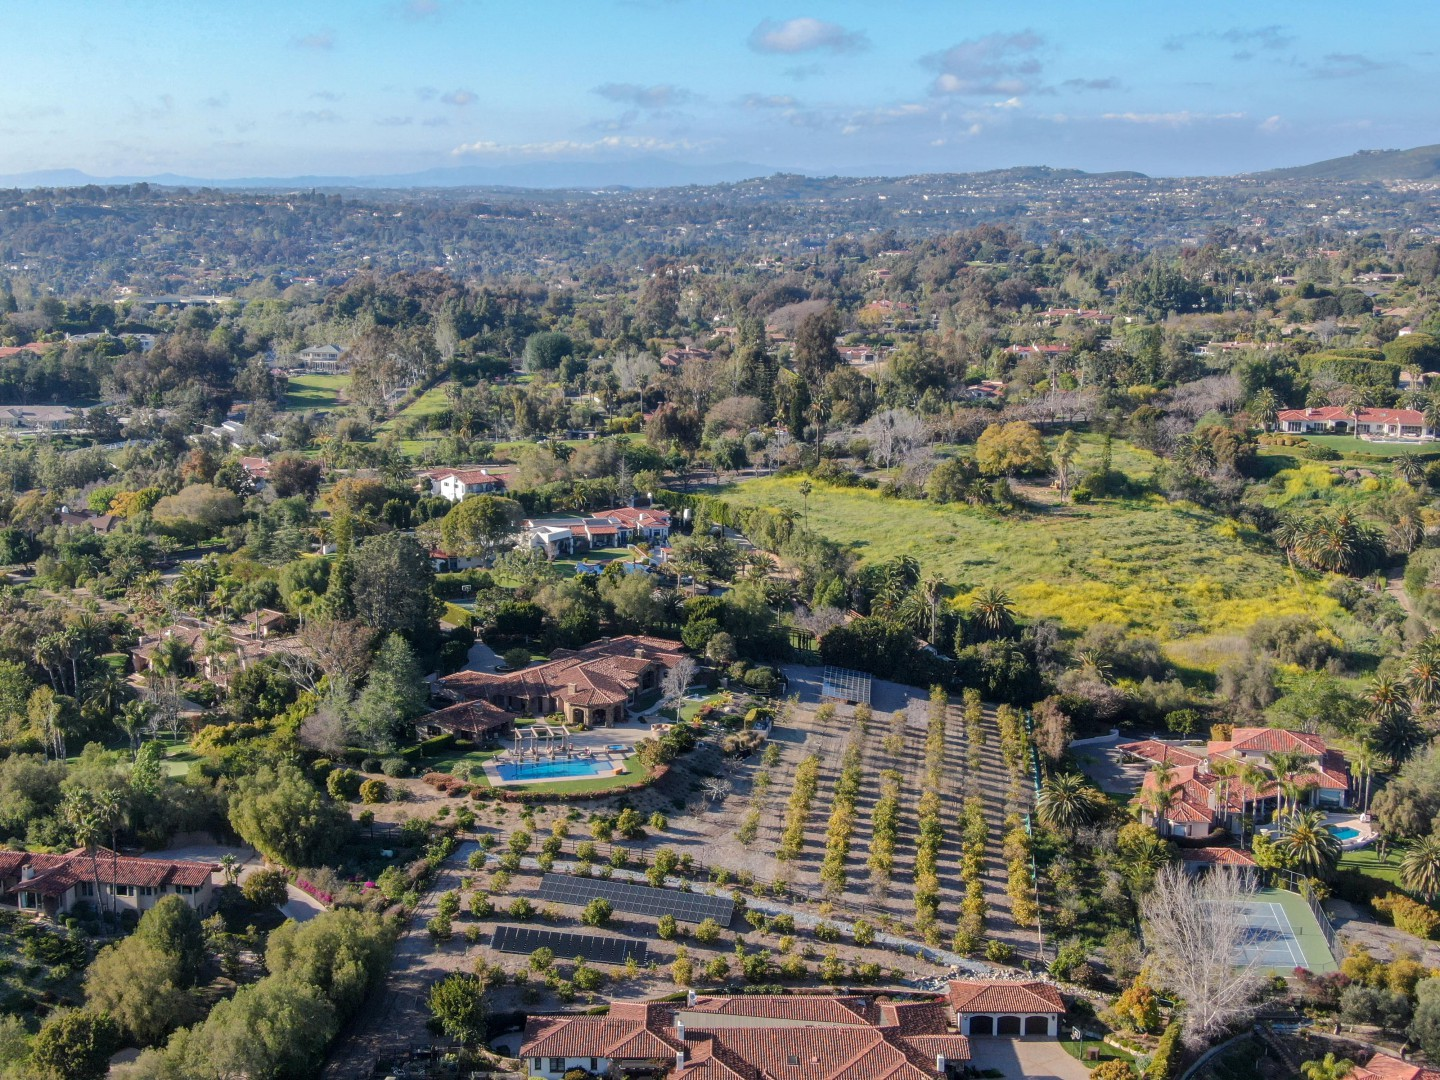 Beautiful mansion view in Rancho Sante Fe County California